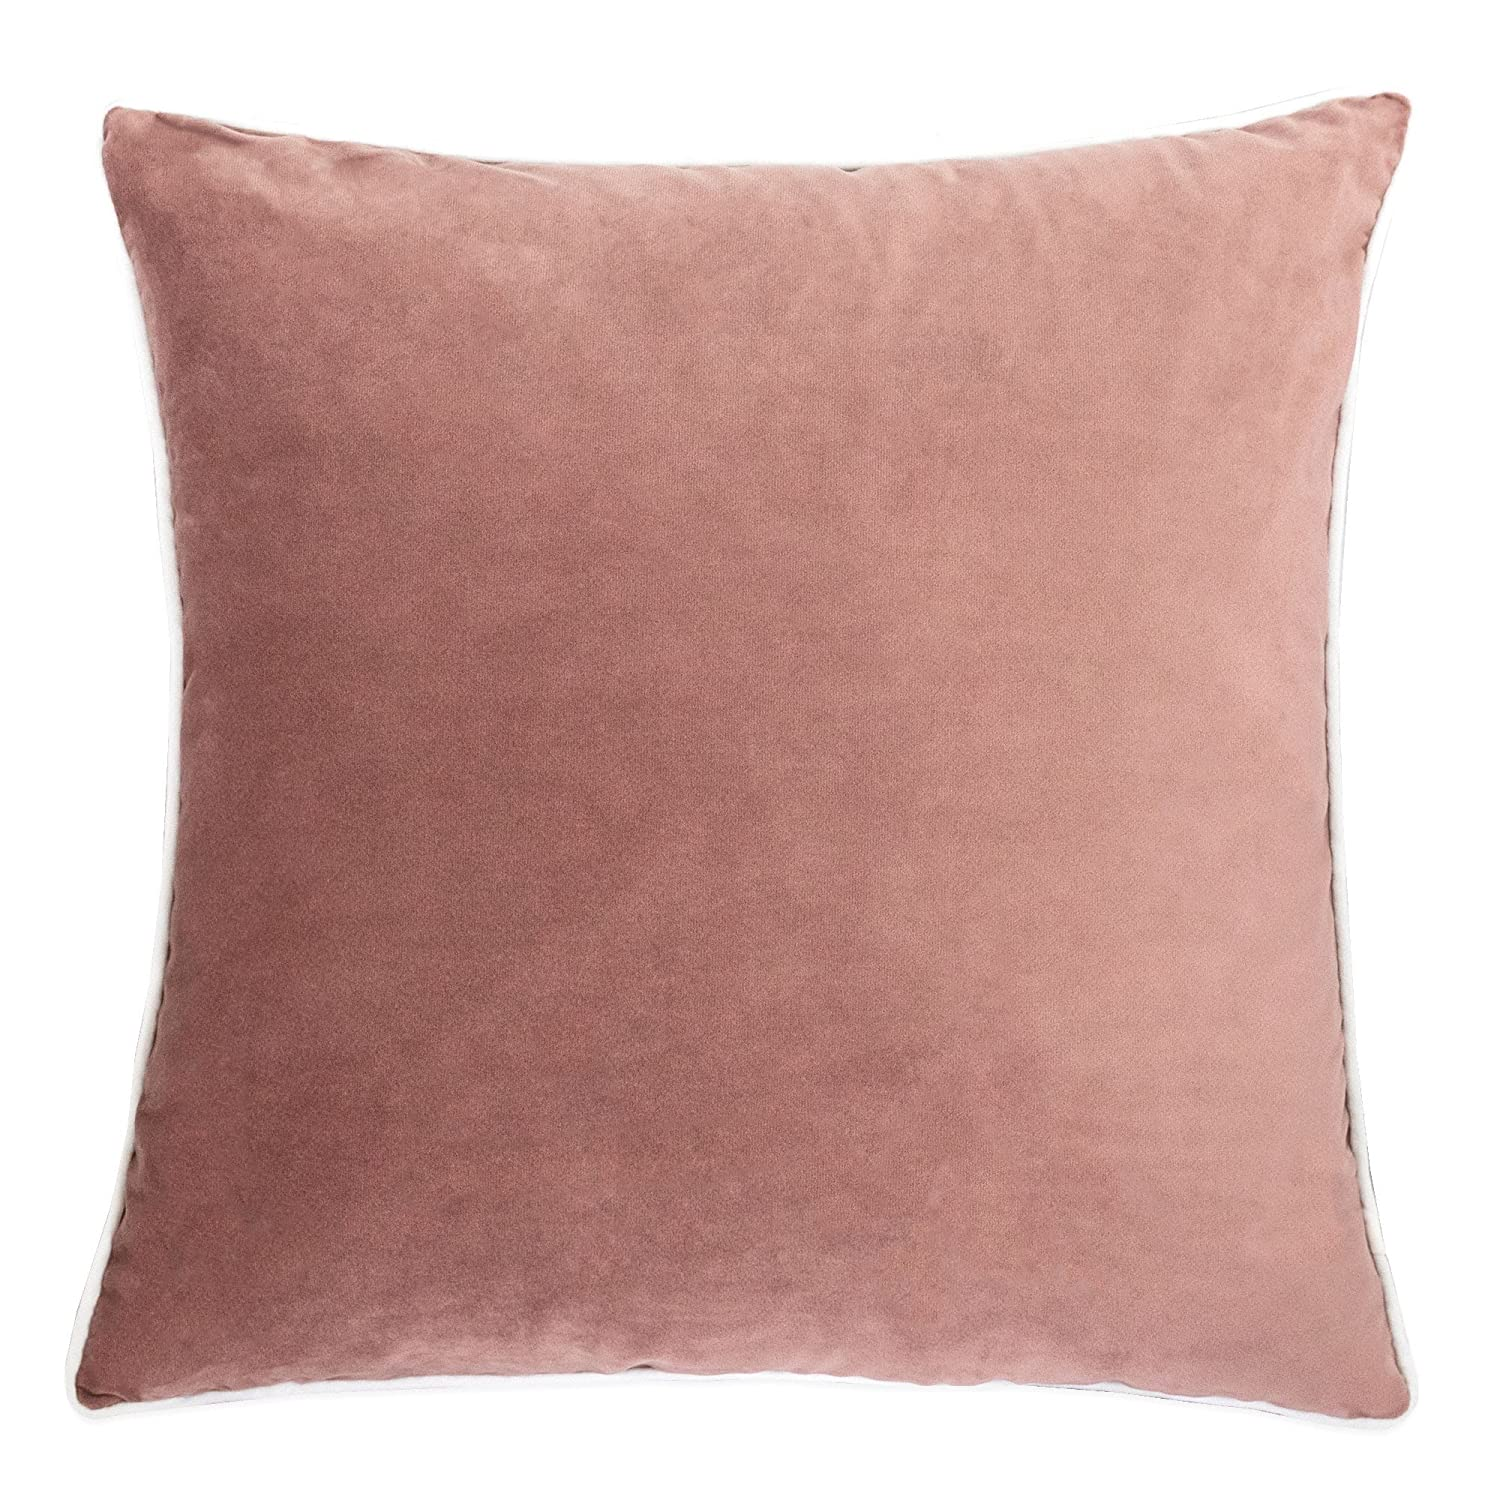 Astounding Homey Cozy Blush Velvet Throw Pillow Cover Pink Series Solid Soft Fuzzy Cozy Warm Slik Decorative Square Couch Cushion Pillow Case 20 X 20 Inch Cover Squirreltailoven Fun Painted Chair Ideas Images Squirreltailovenorg